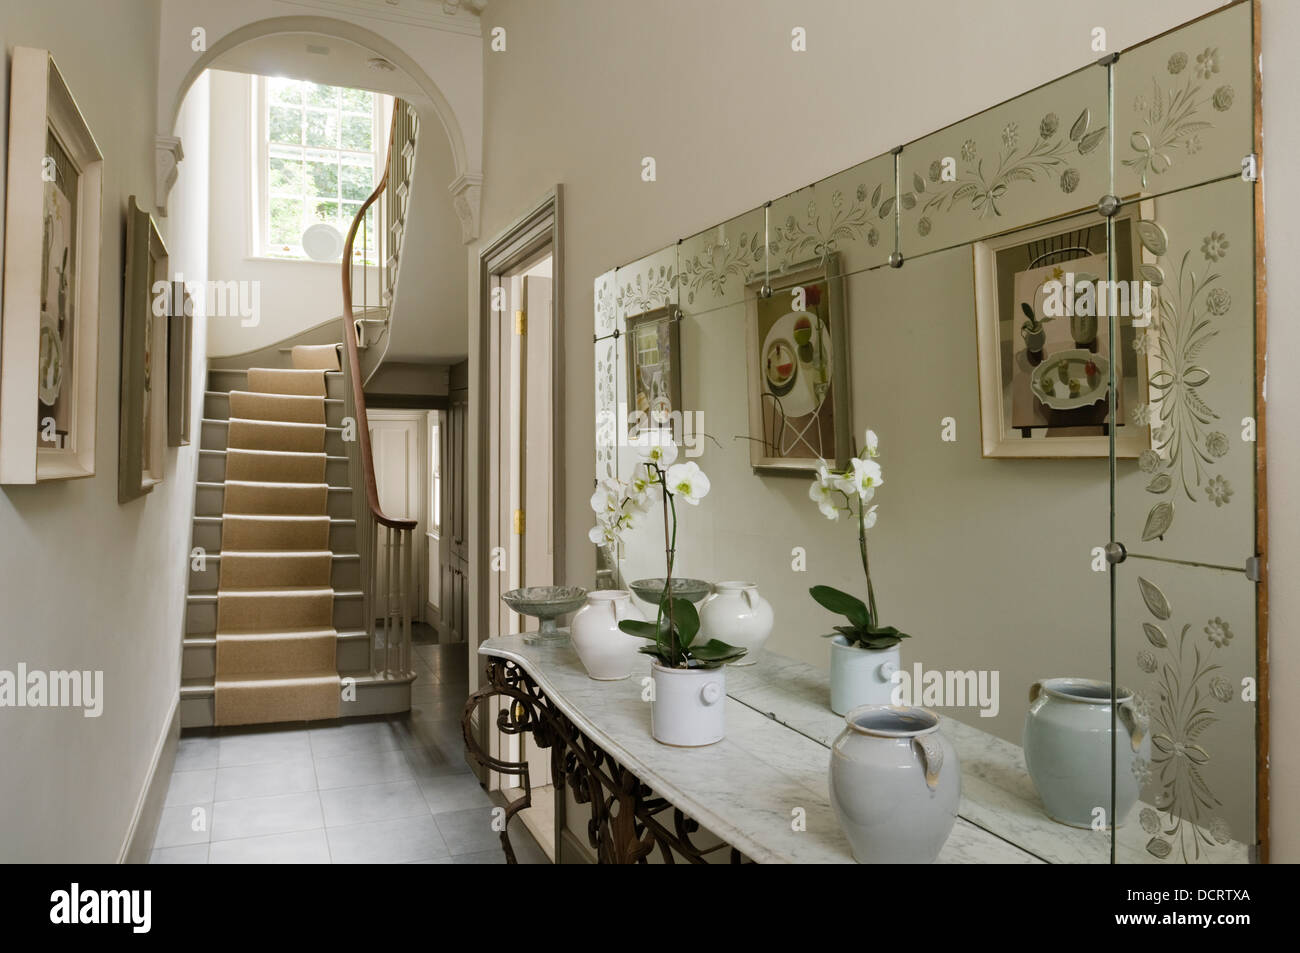 Decorative Mirror And Antique French Wrought Iron Console